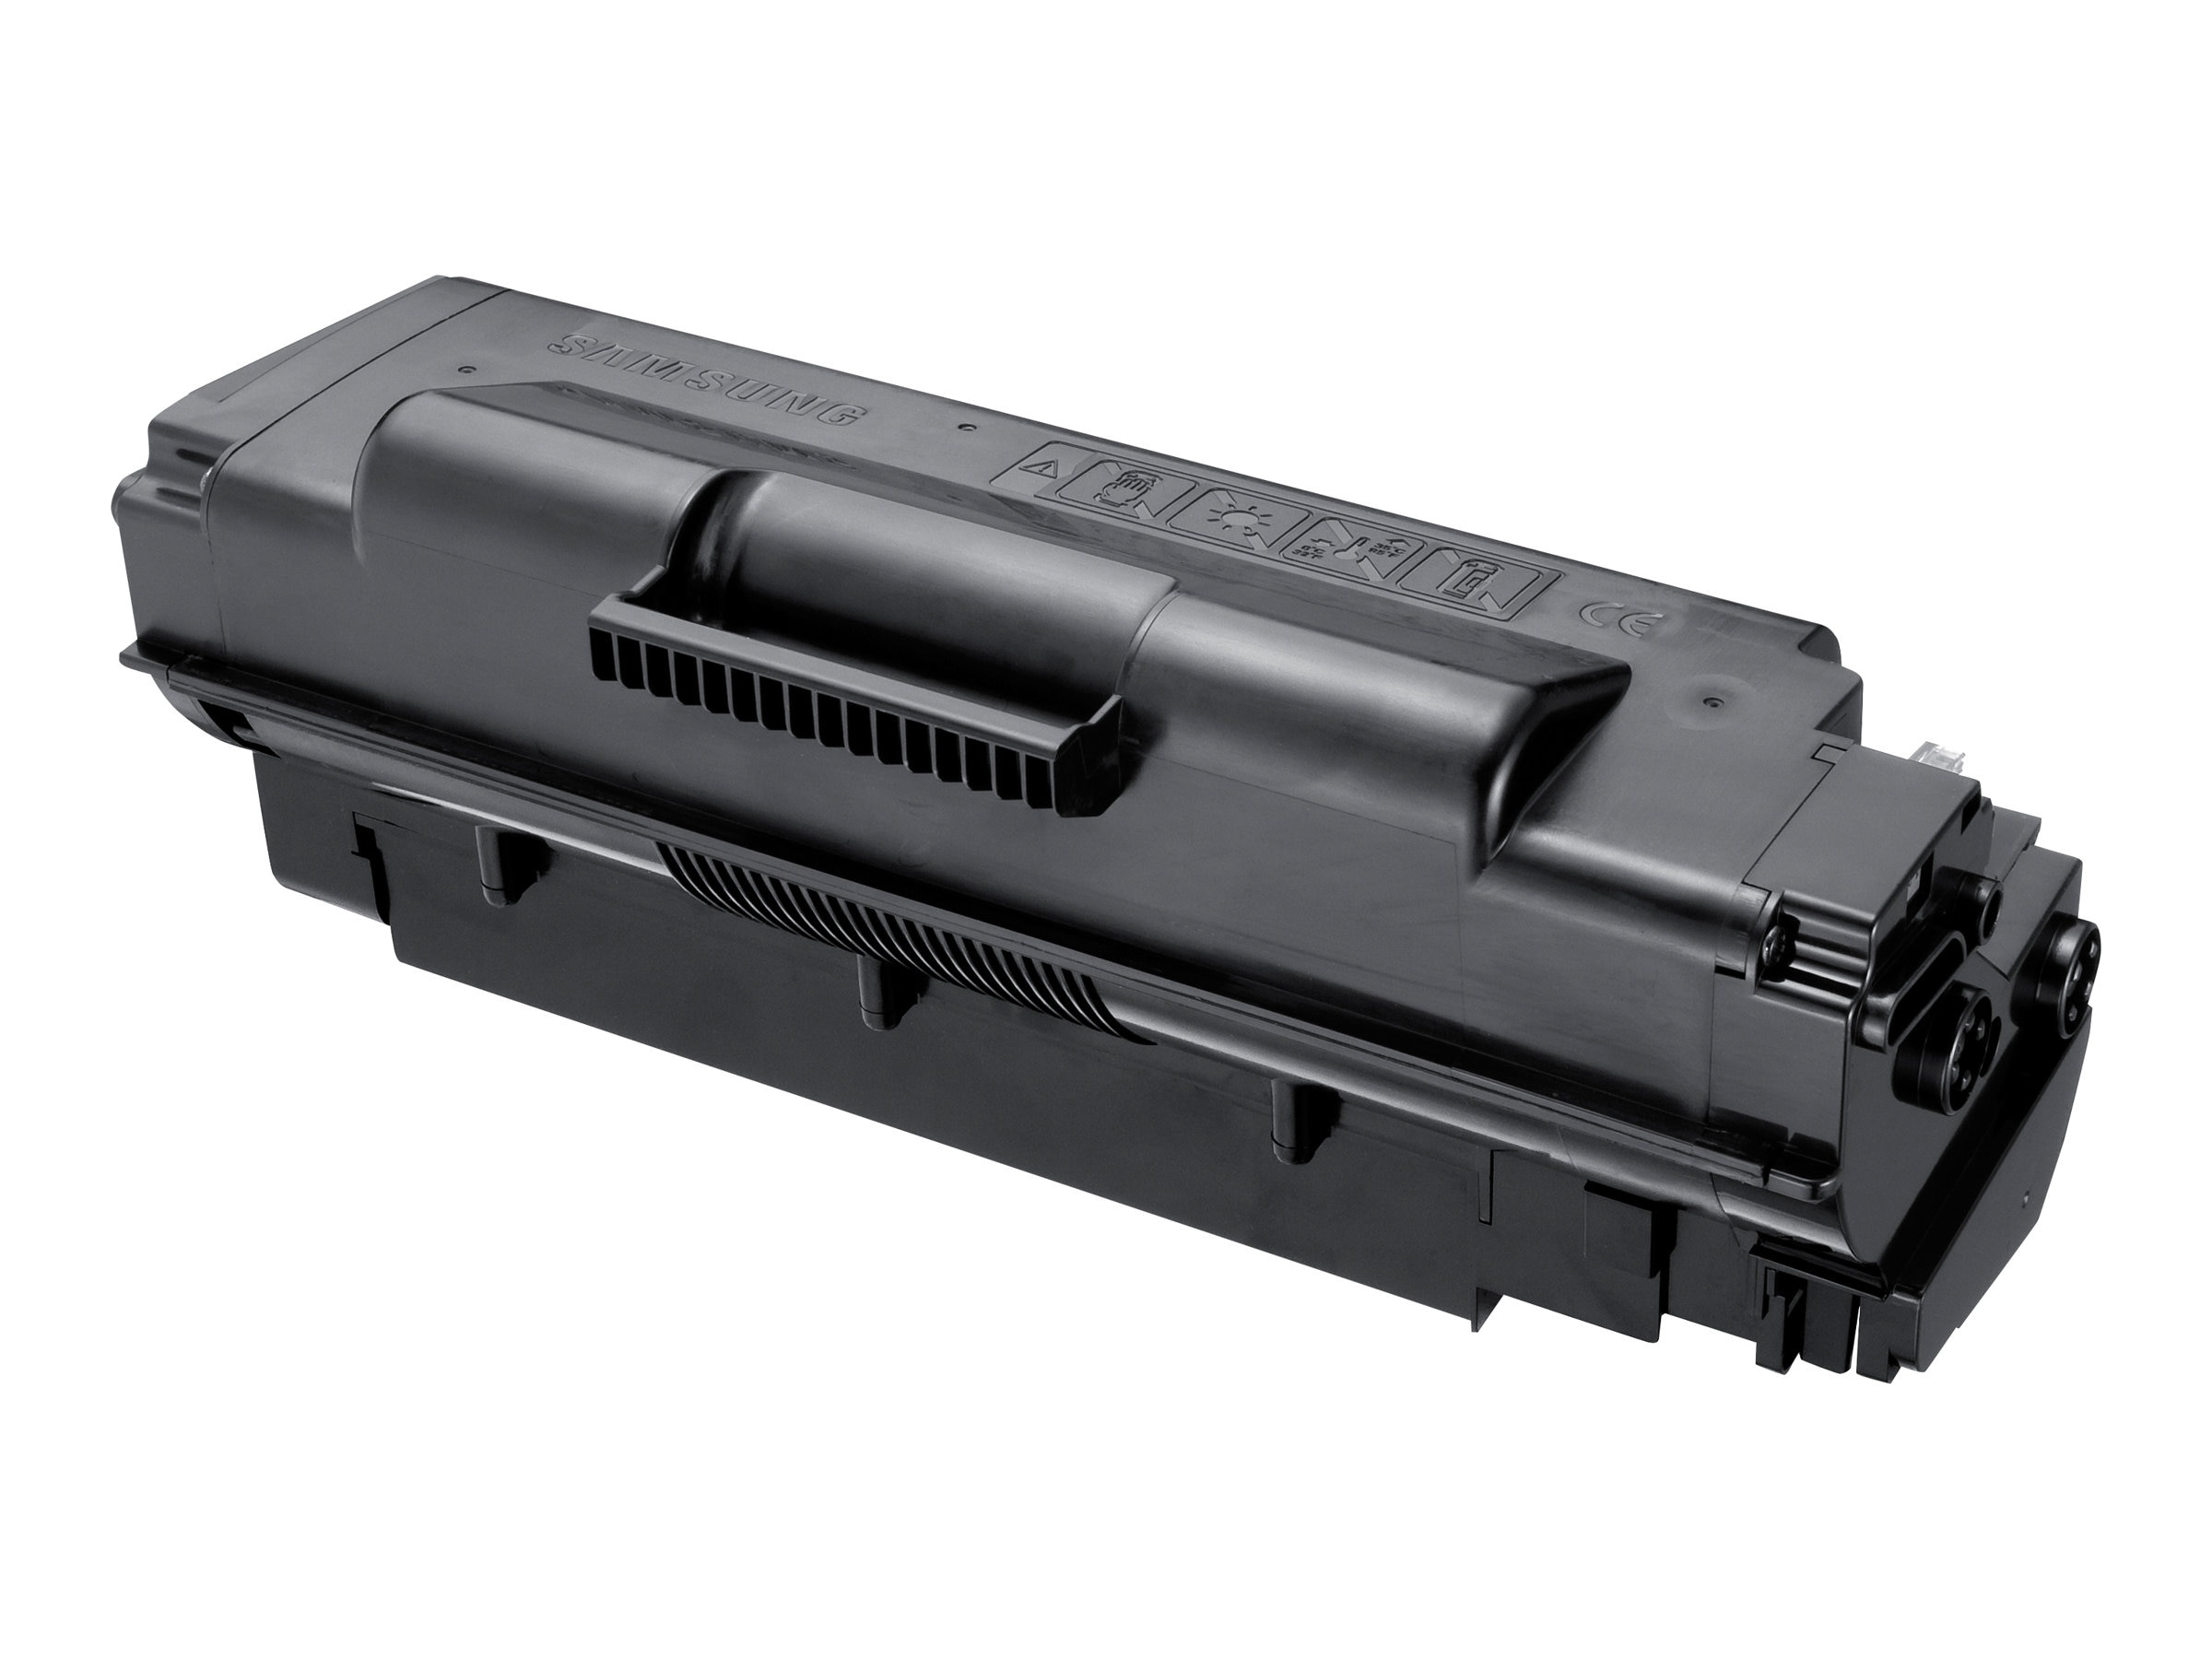 Samsung Black High Yield Toner Cartridge for ML-4512ND, ML-5012ND & ML-5017ND, MLT-D307L, 13070657, Toner and Imaging Components